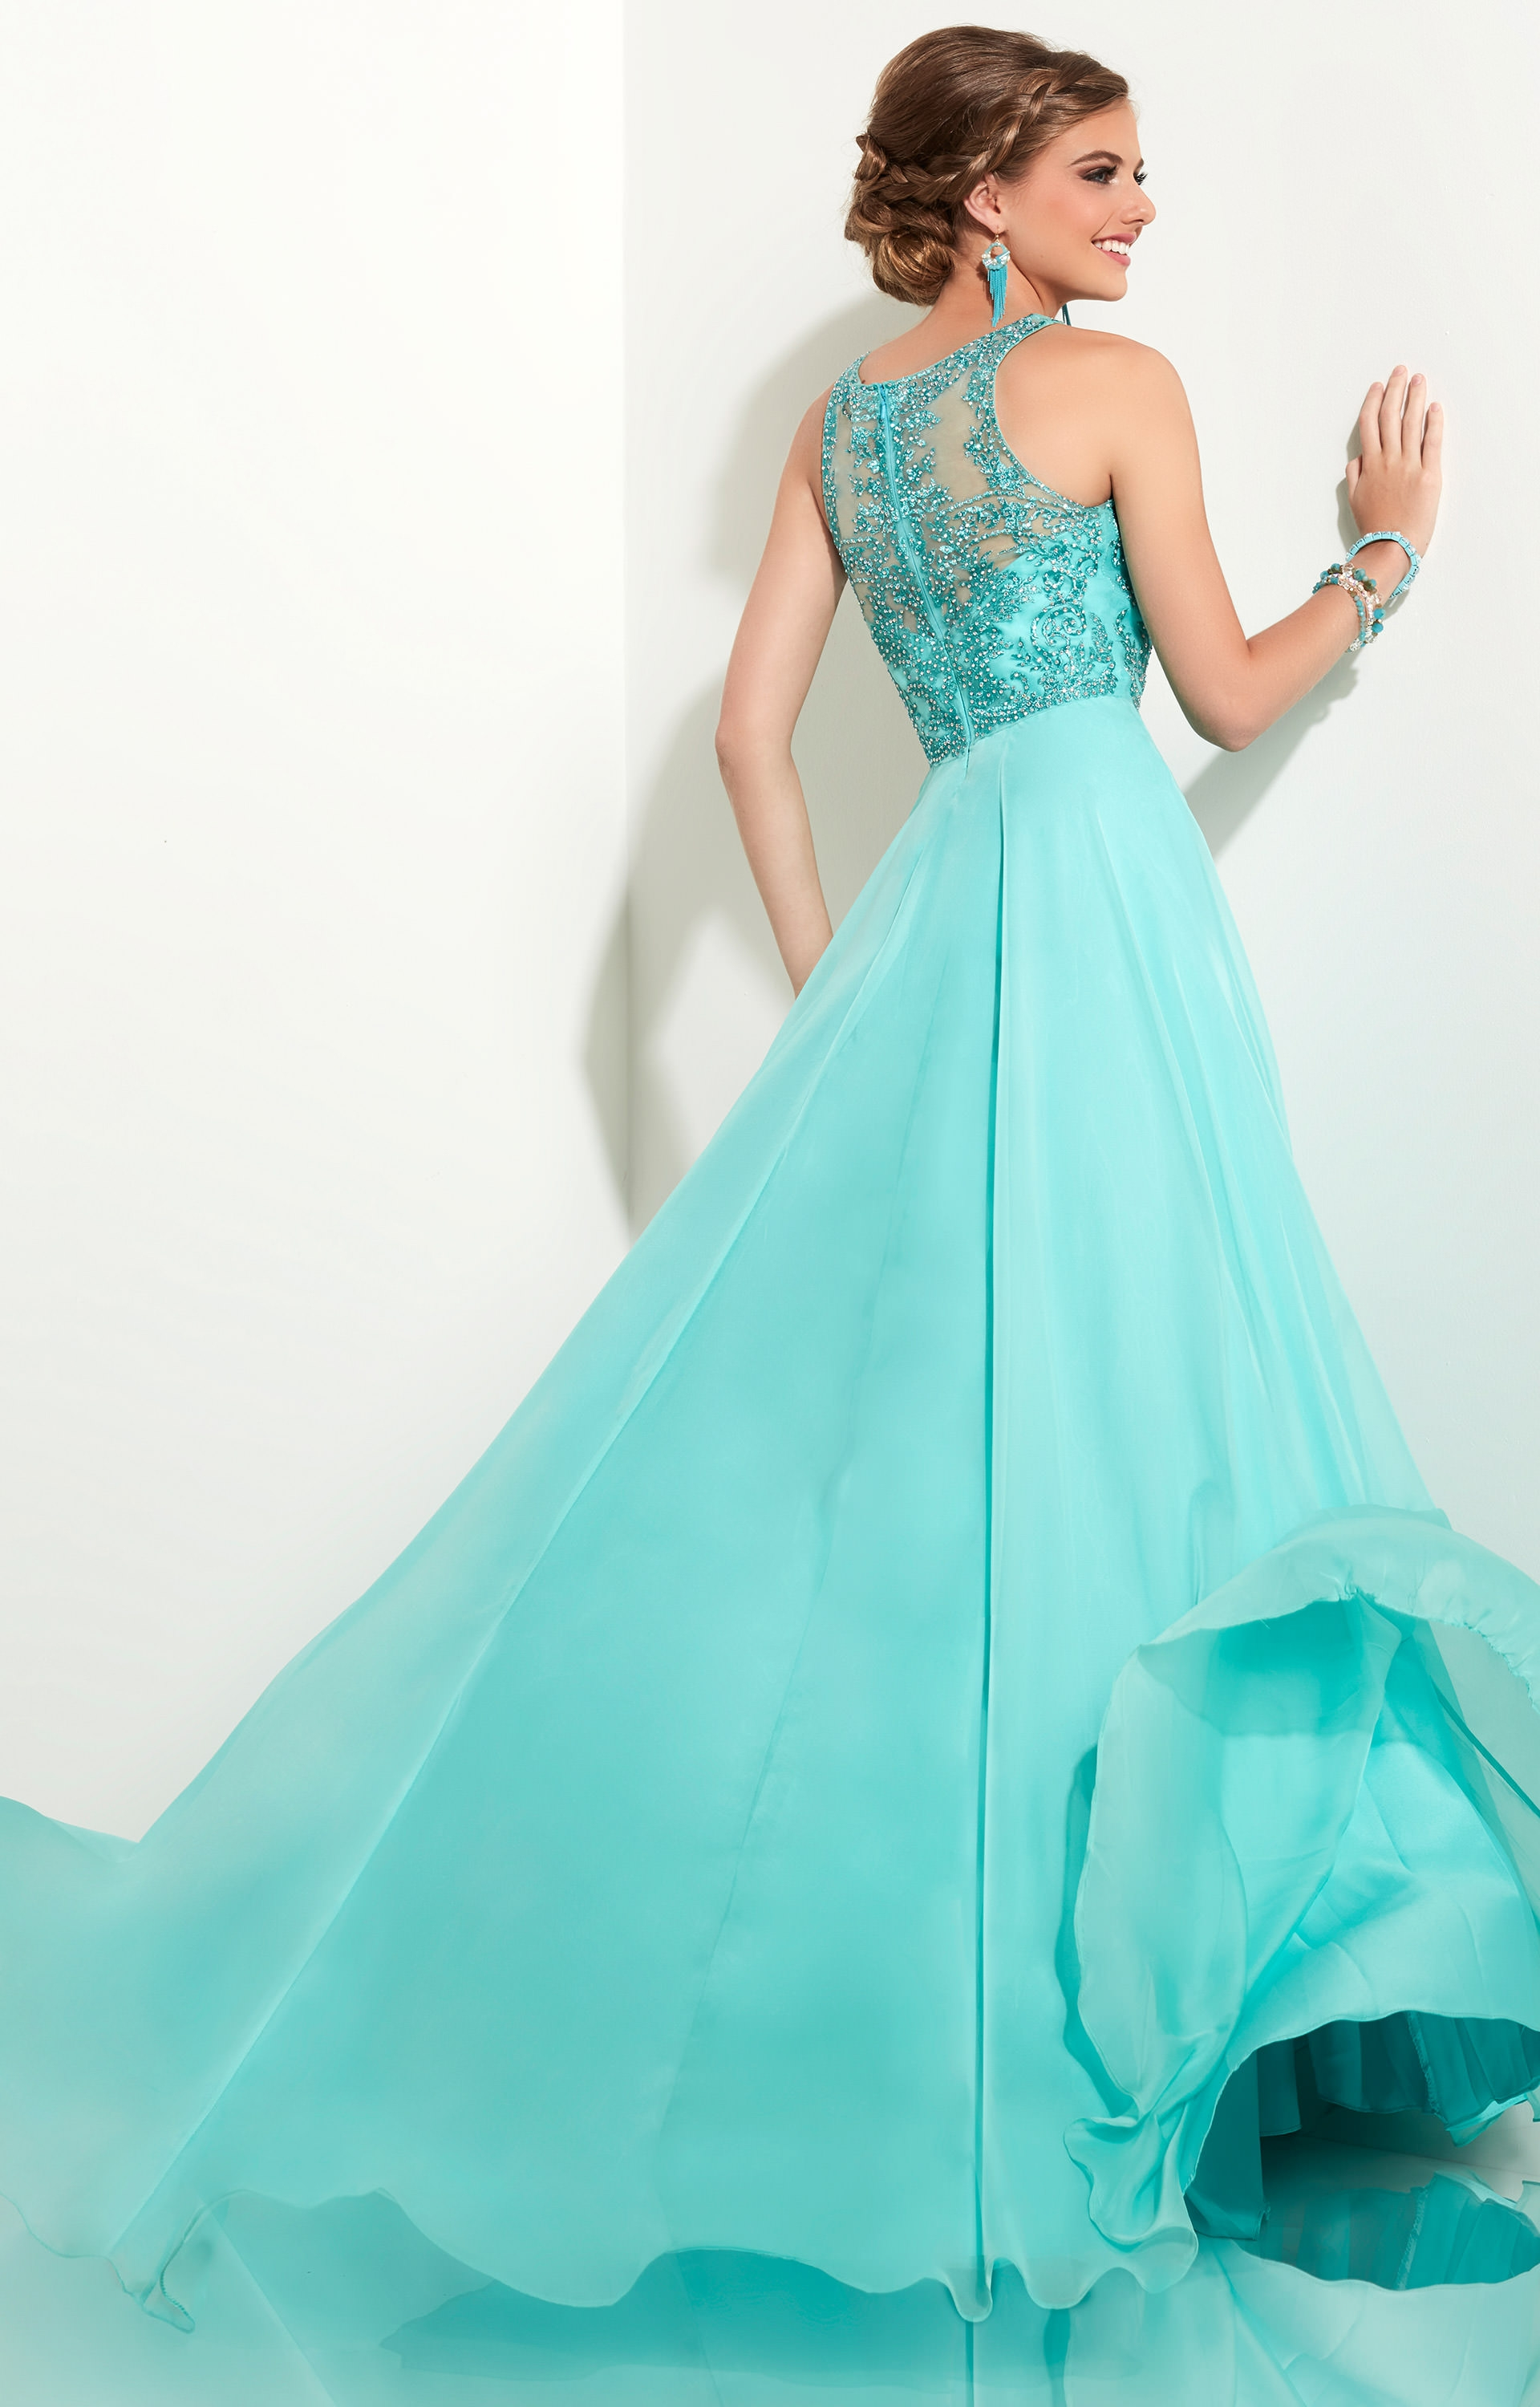 Studio 17 12612 - Chiffon Skirt with Beaded Halter Top Dress Prom ...